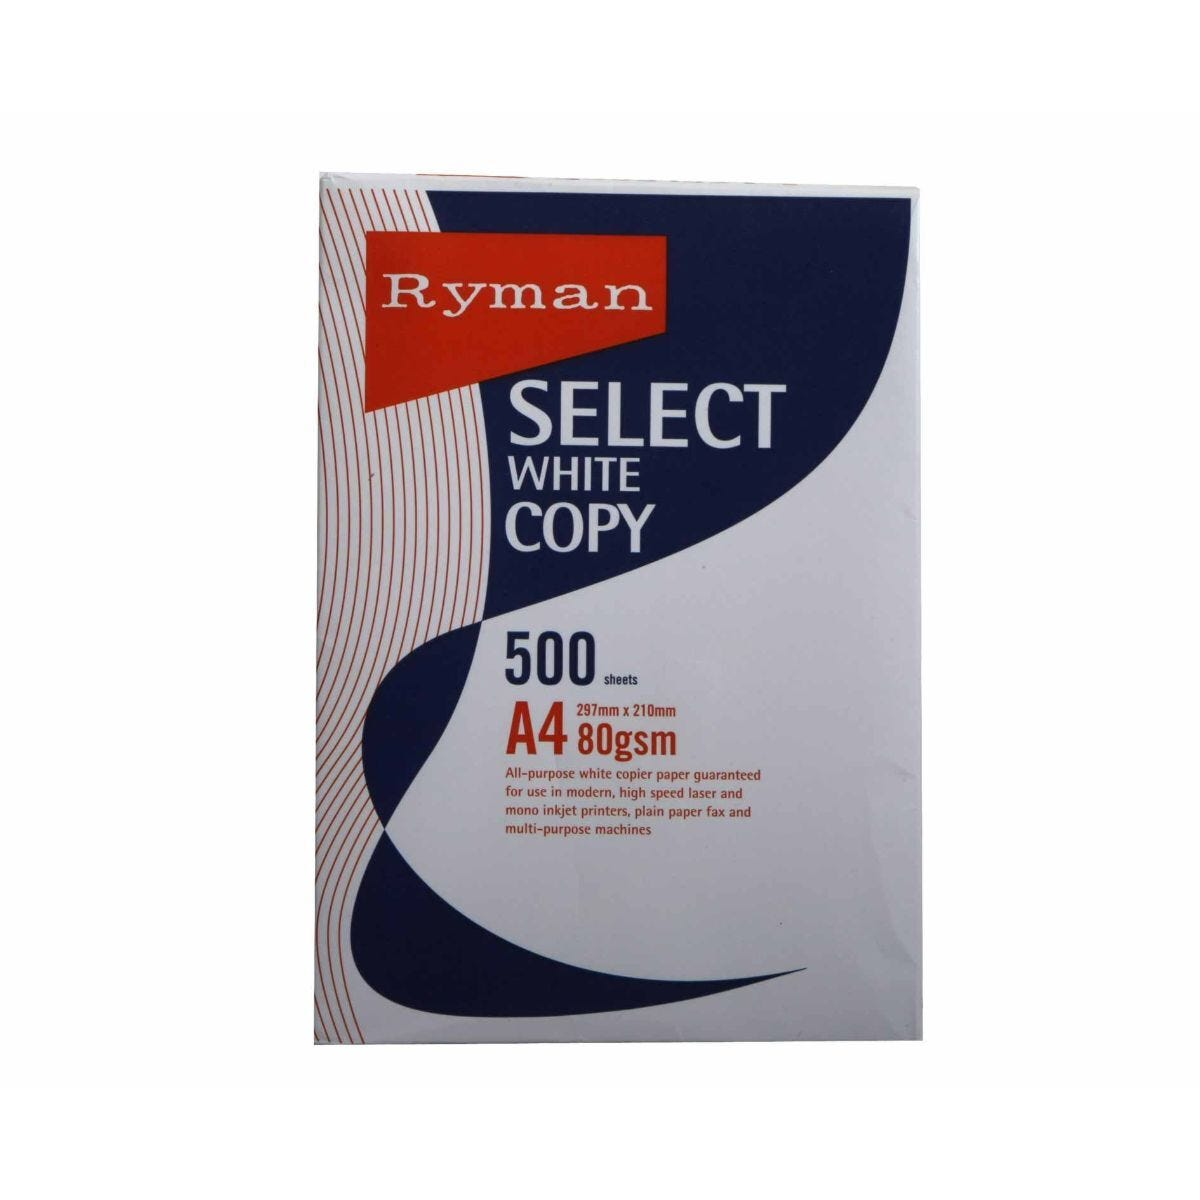 Ryman Select Copy Ream of Paper A4 80gsm 500 Sheets